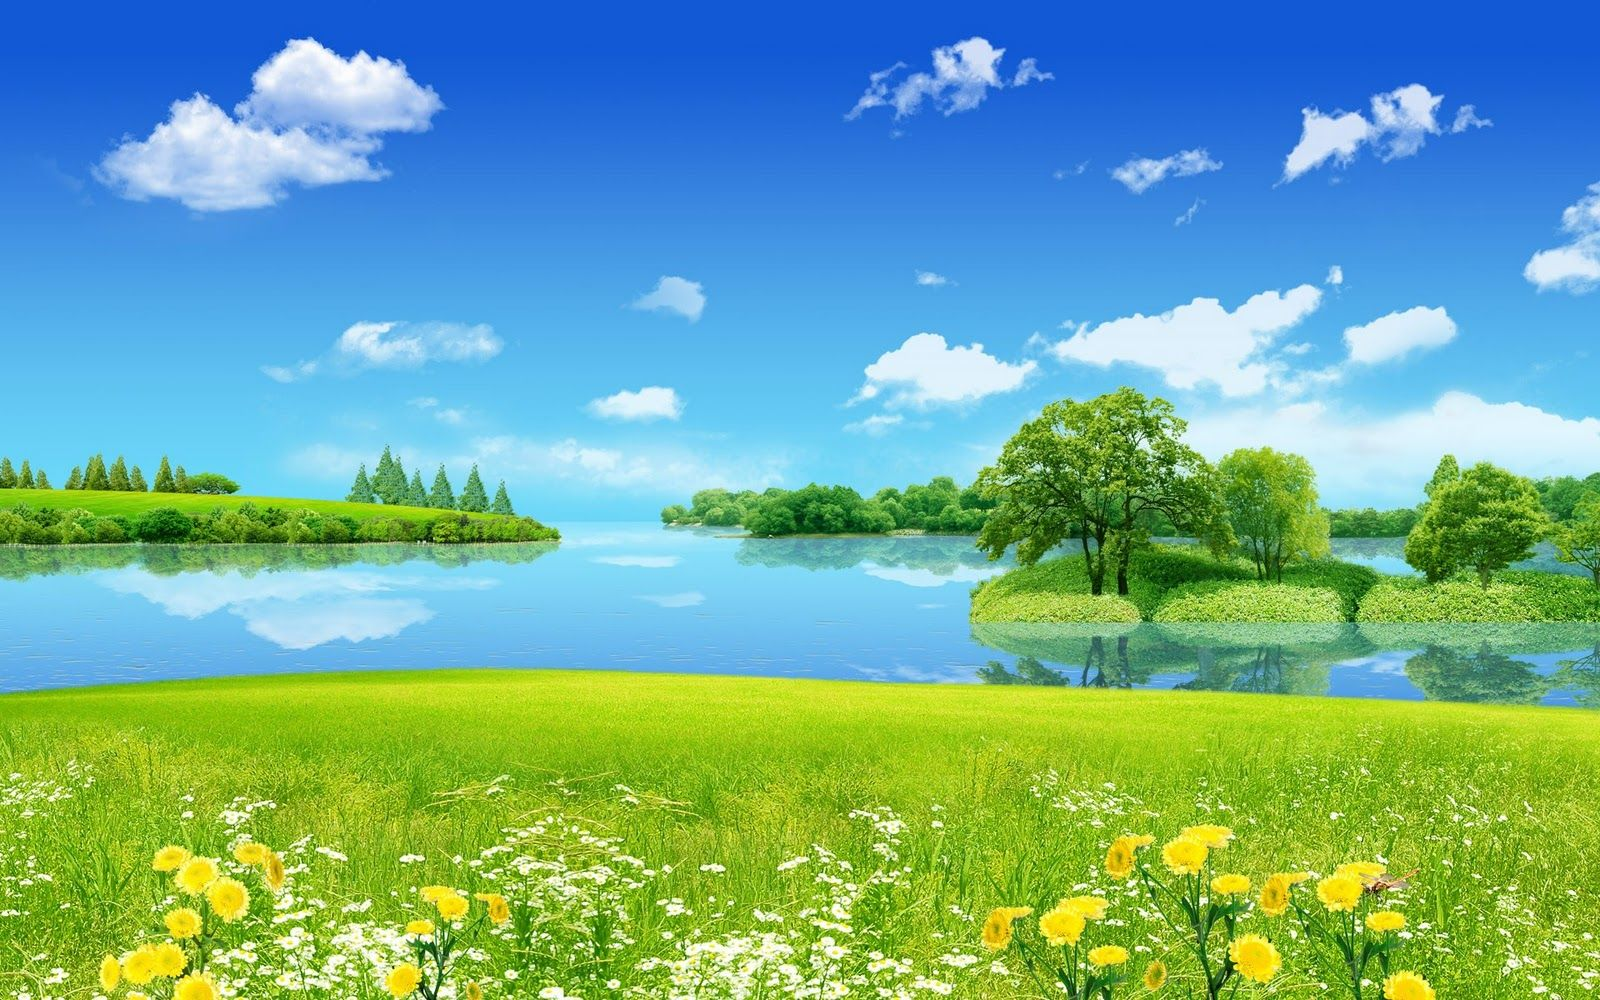 Download 770 Background Pemandangan Dari Atas HD Terbaru